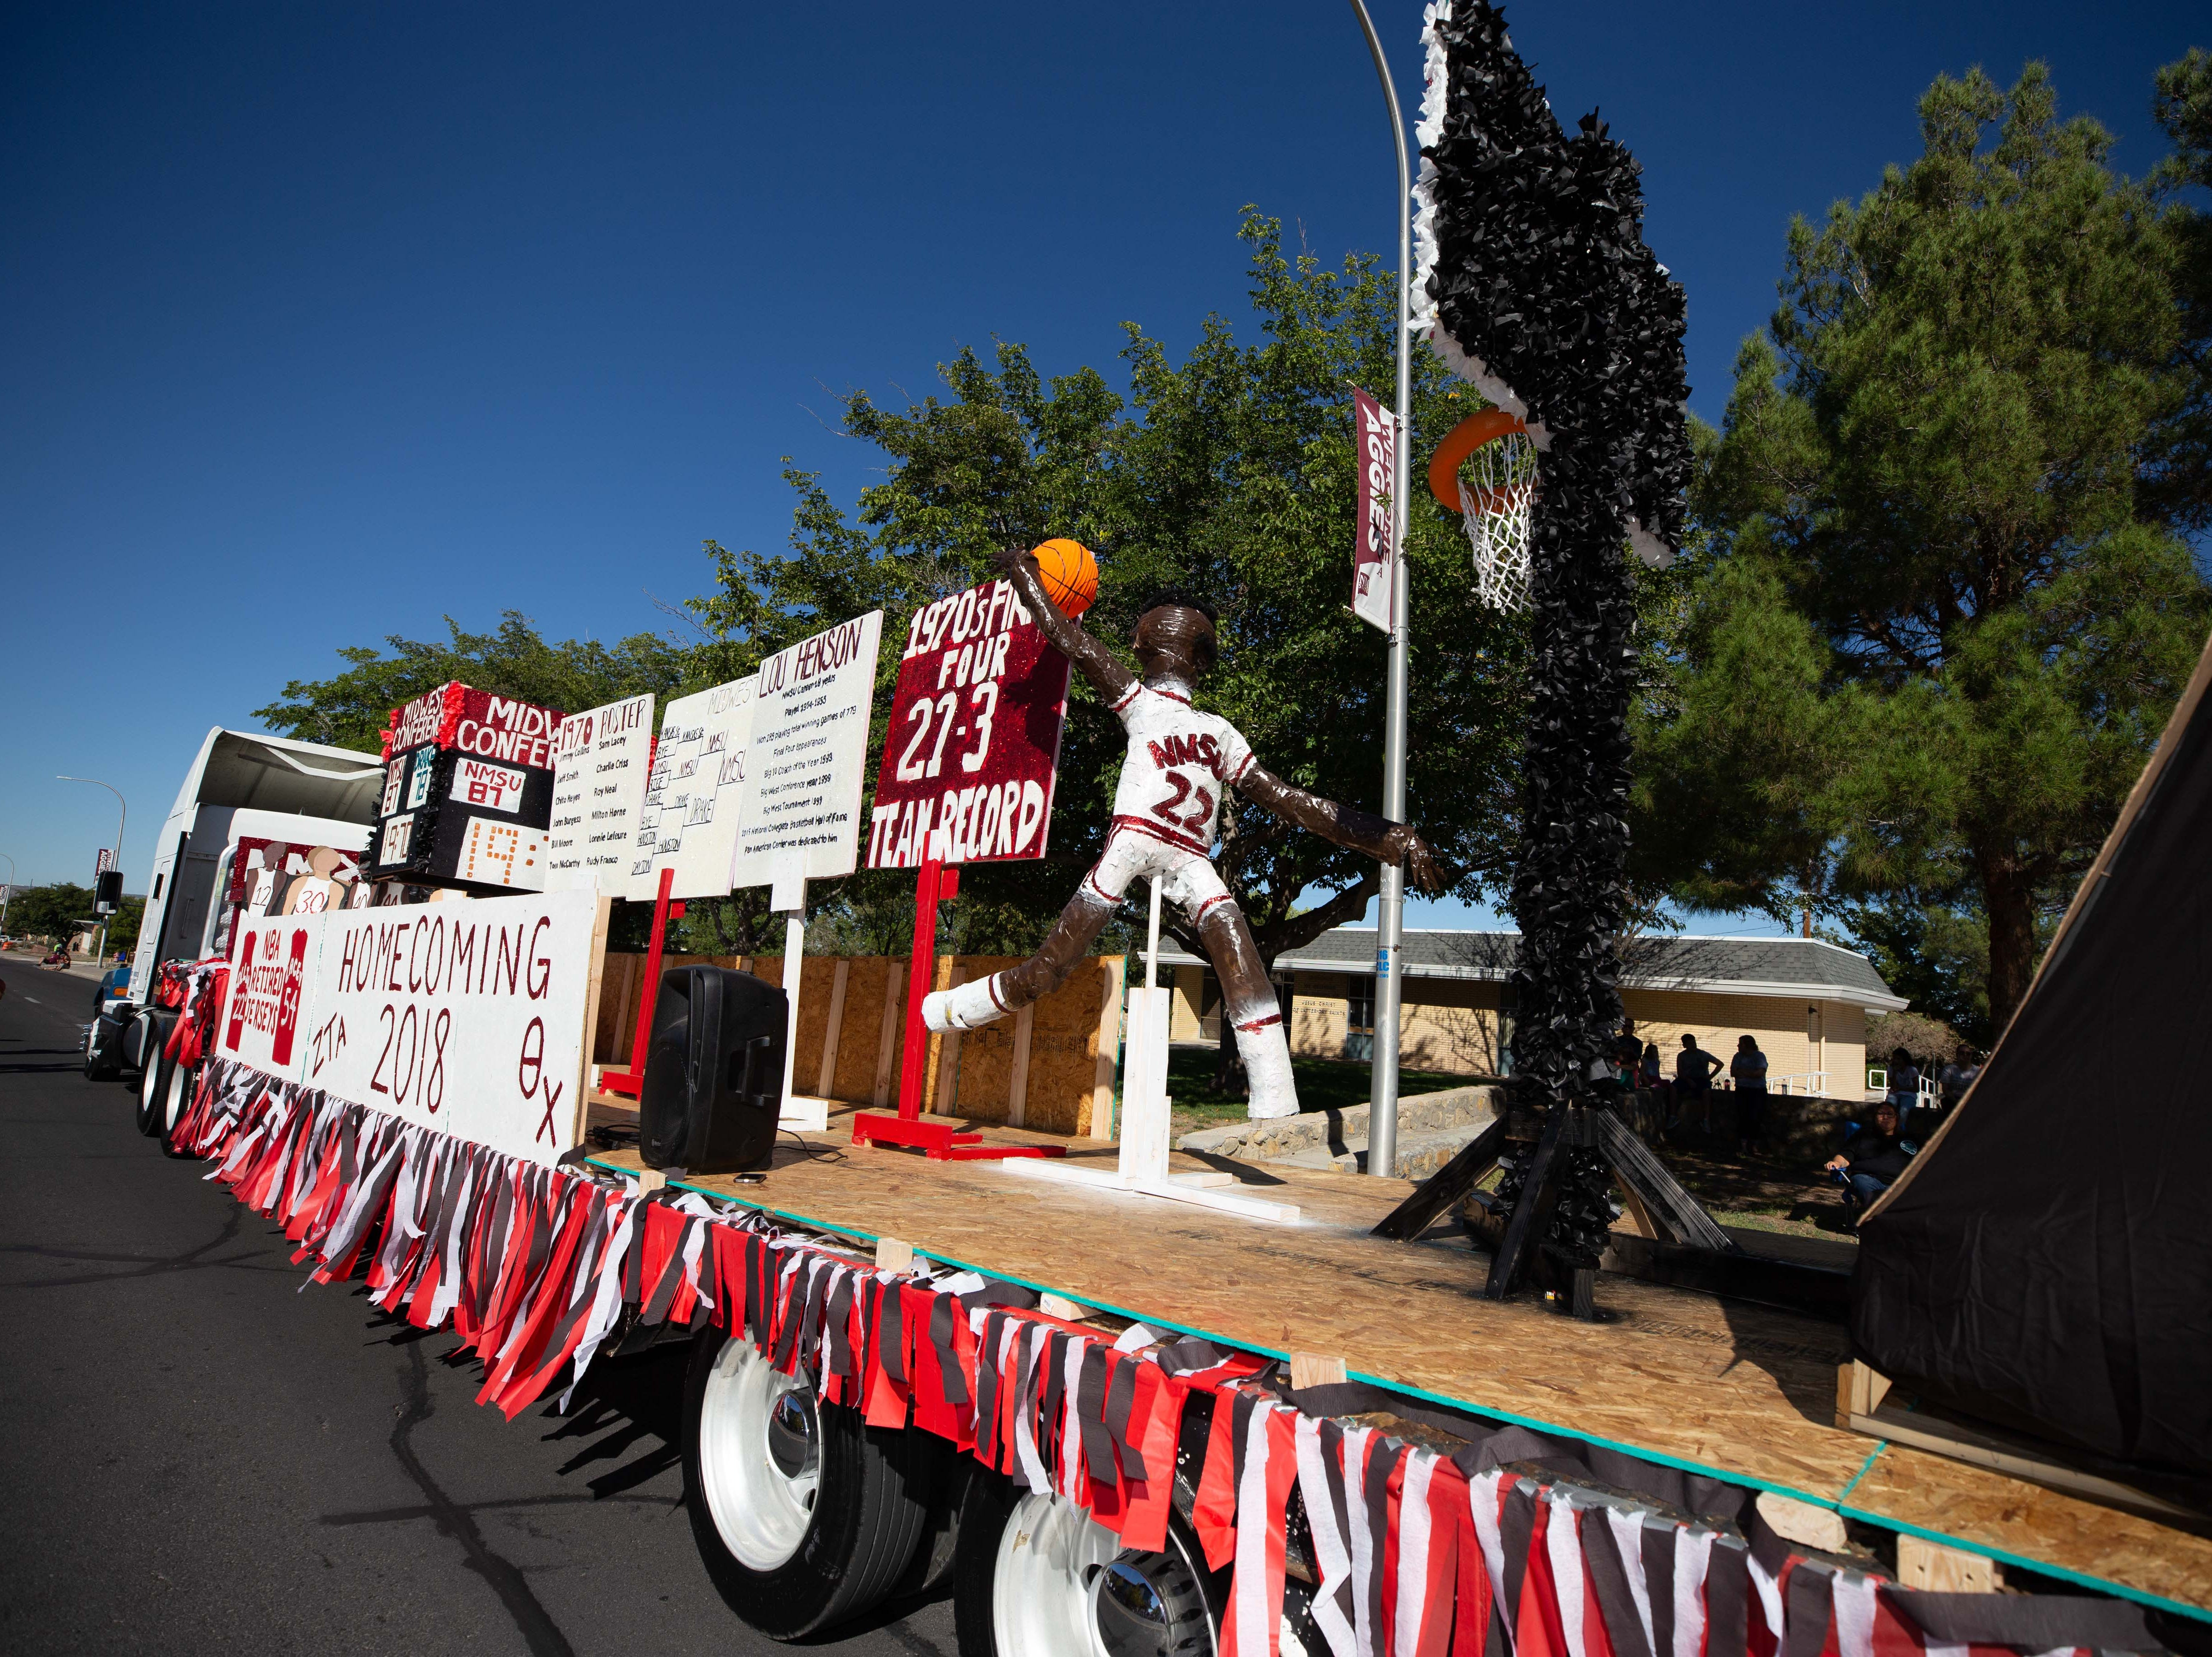 Zeta Tau Alpha and Theta Chi parade float at the NMSU Homecoming Parade on October 6, 2018.